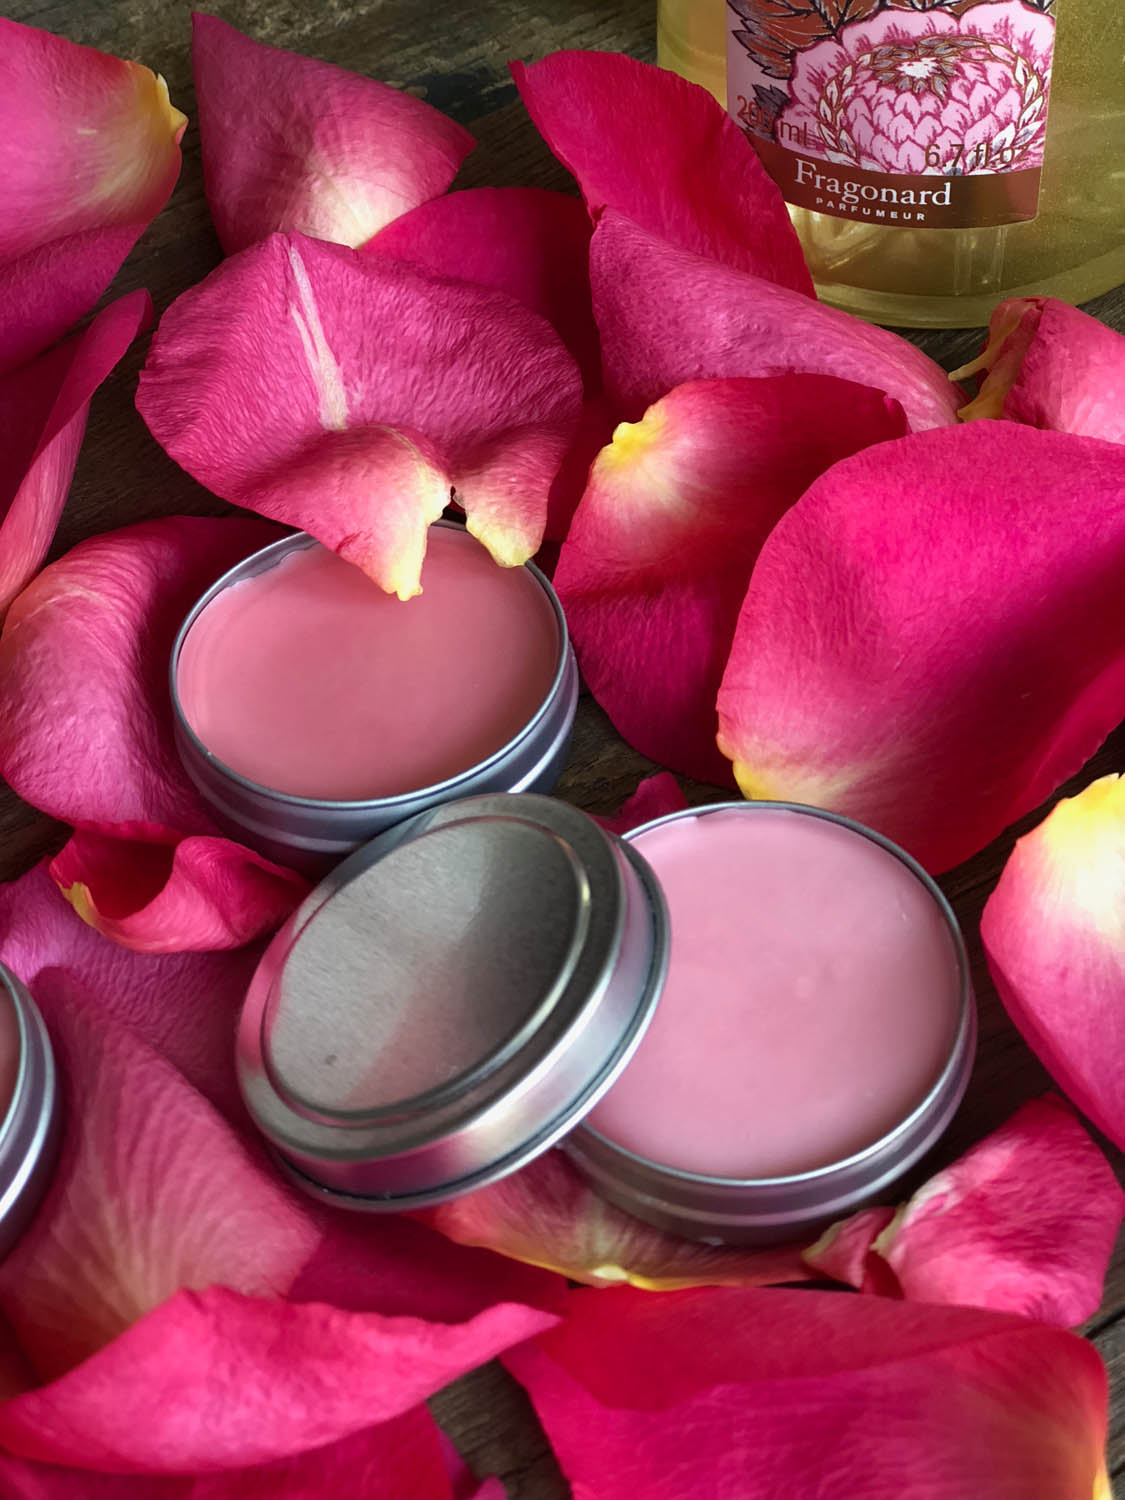 Finished homemade lip balms with pink colorant displayed among rose petals